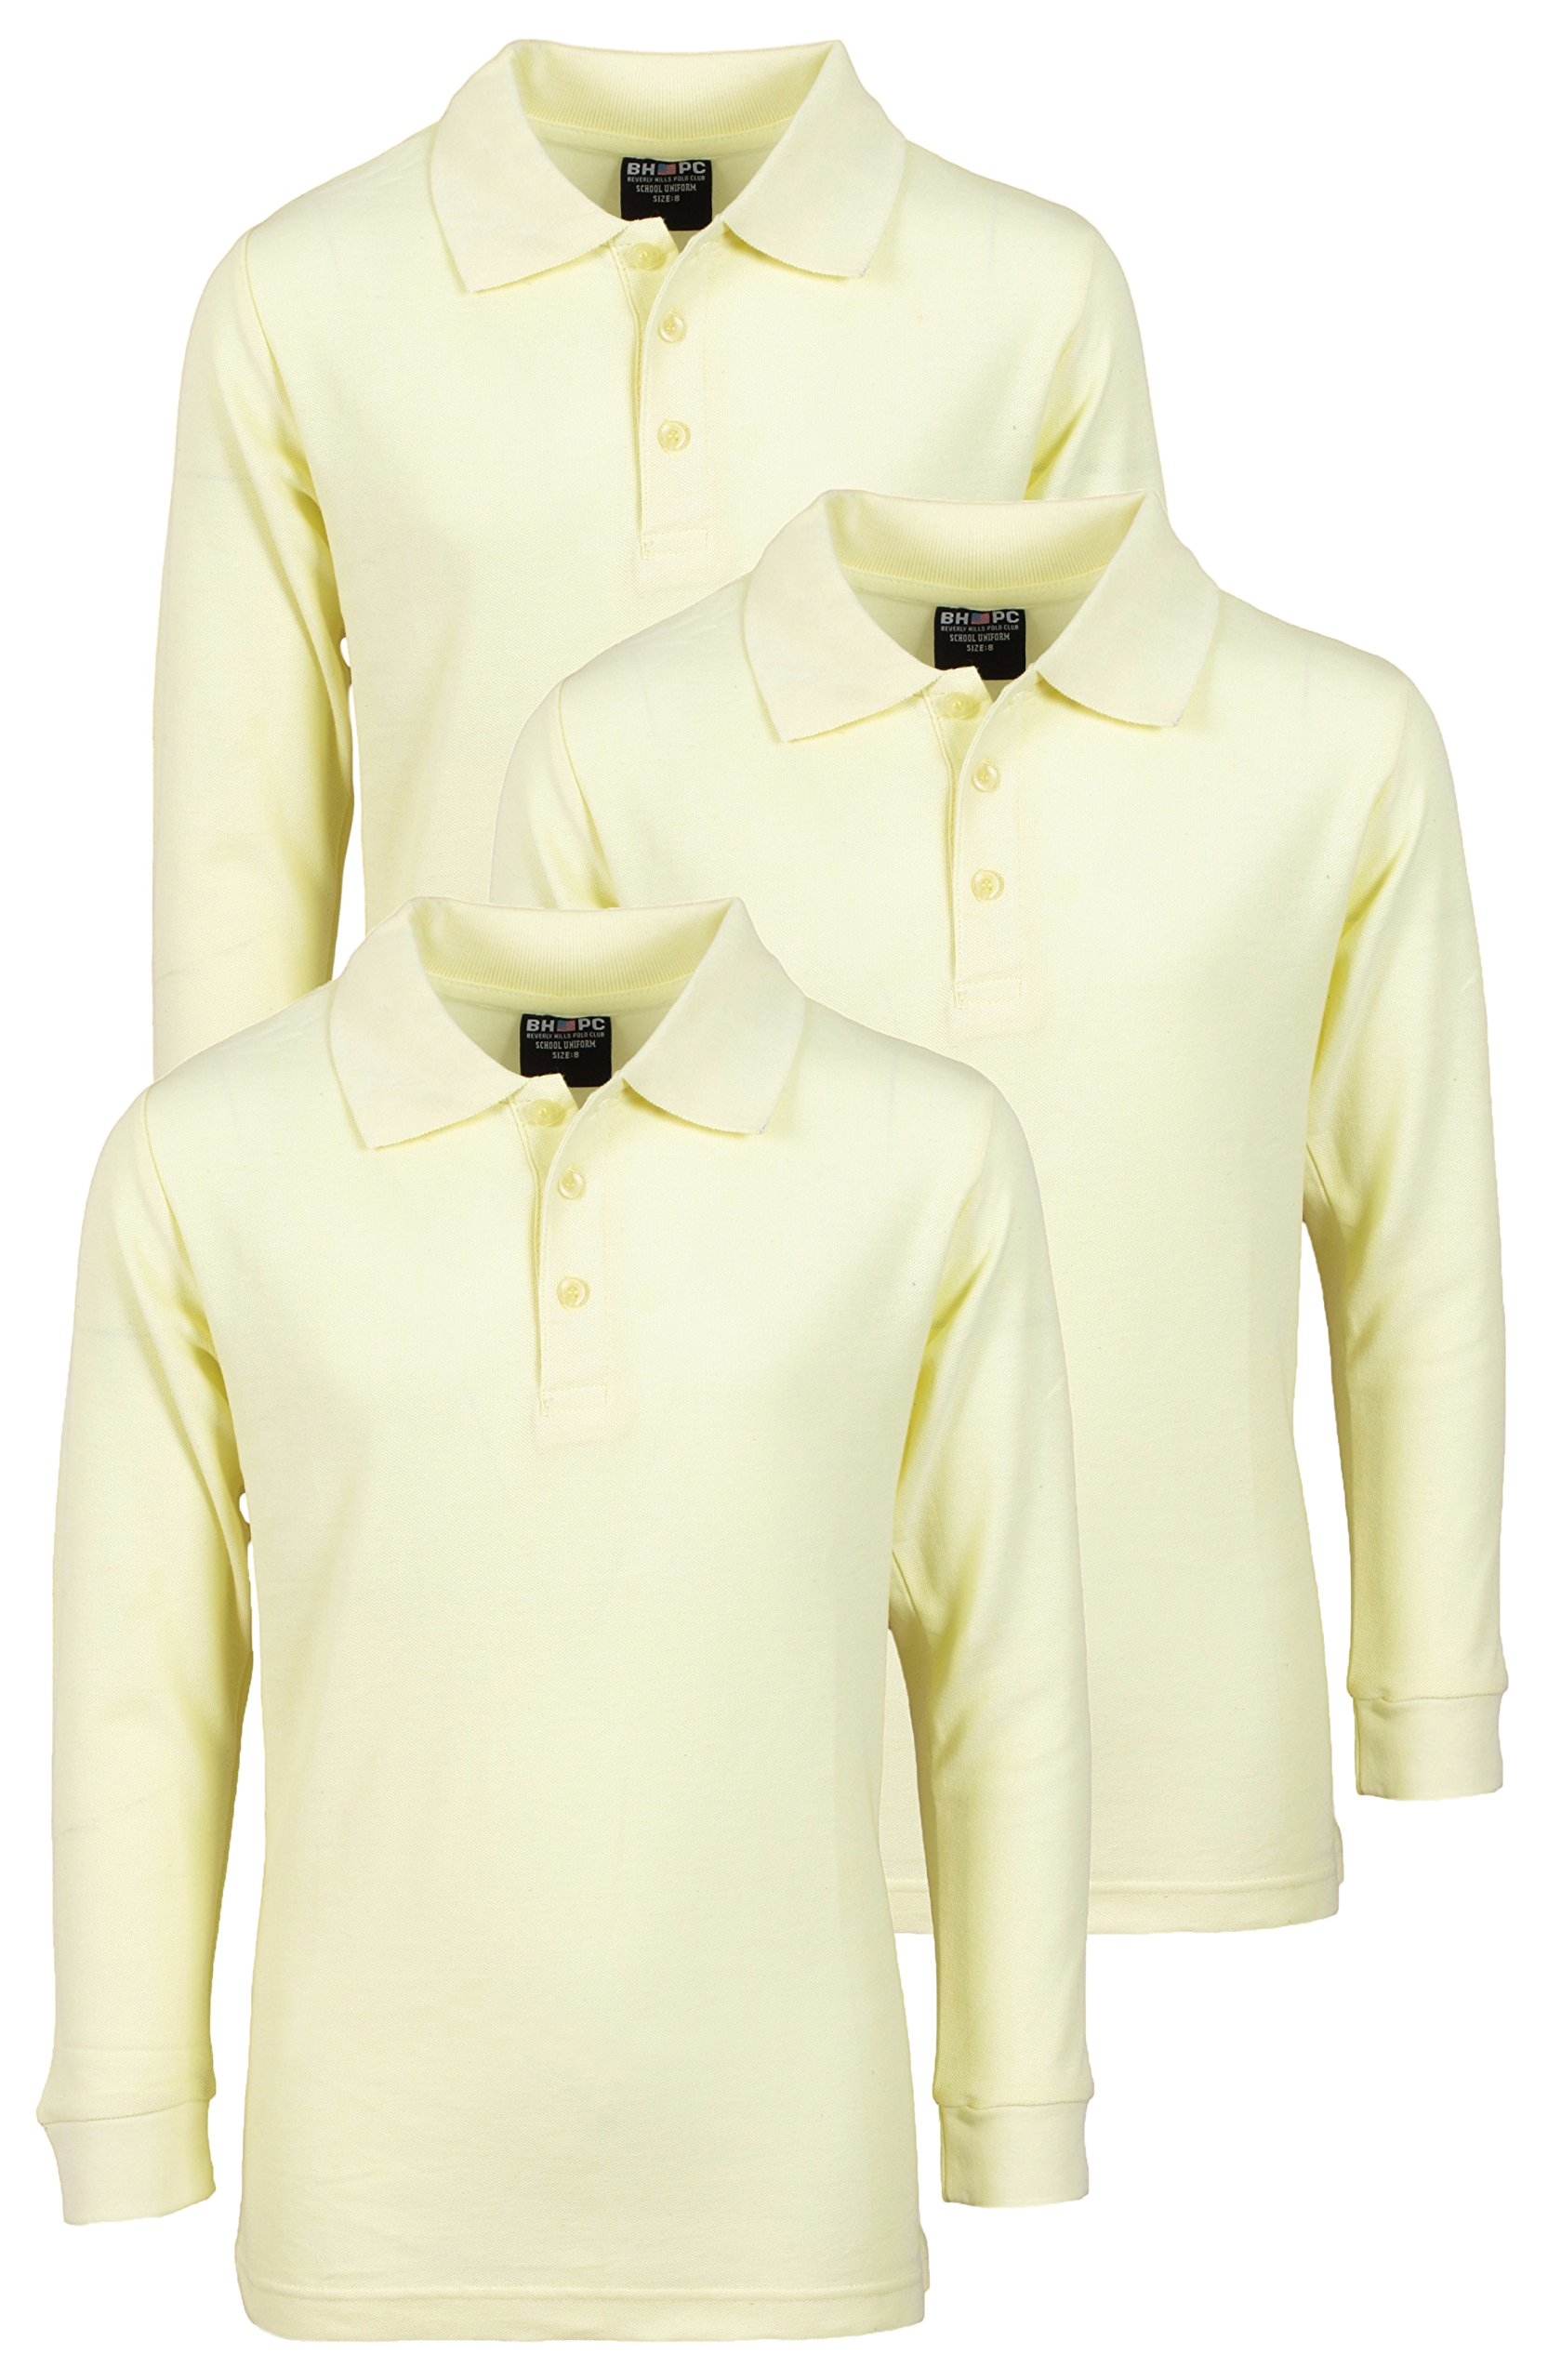 'Beverly Hills Polo Club 3 Pack of Boys' Long Sleeve Pique Uniform Polo Shirts, Size 5, Yellow'